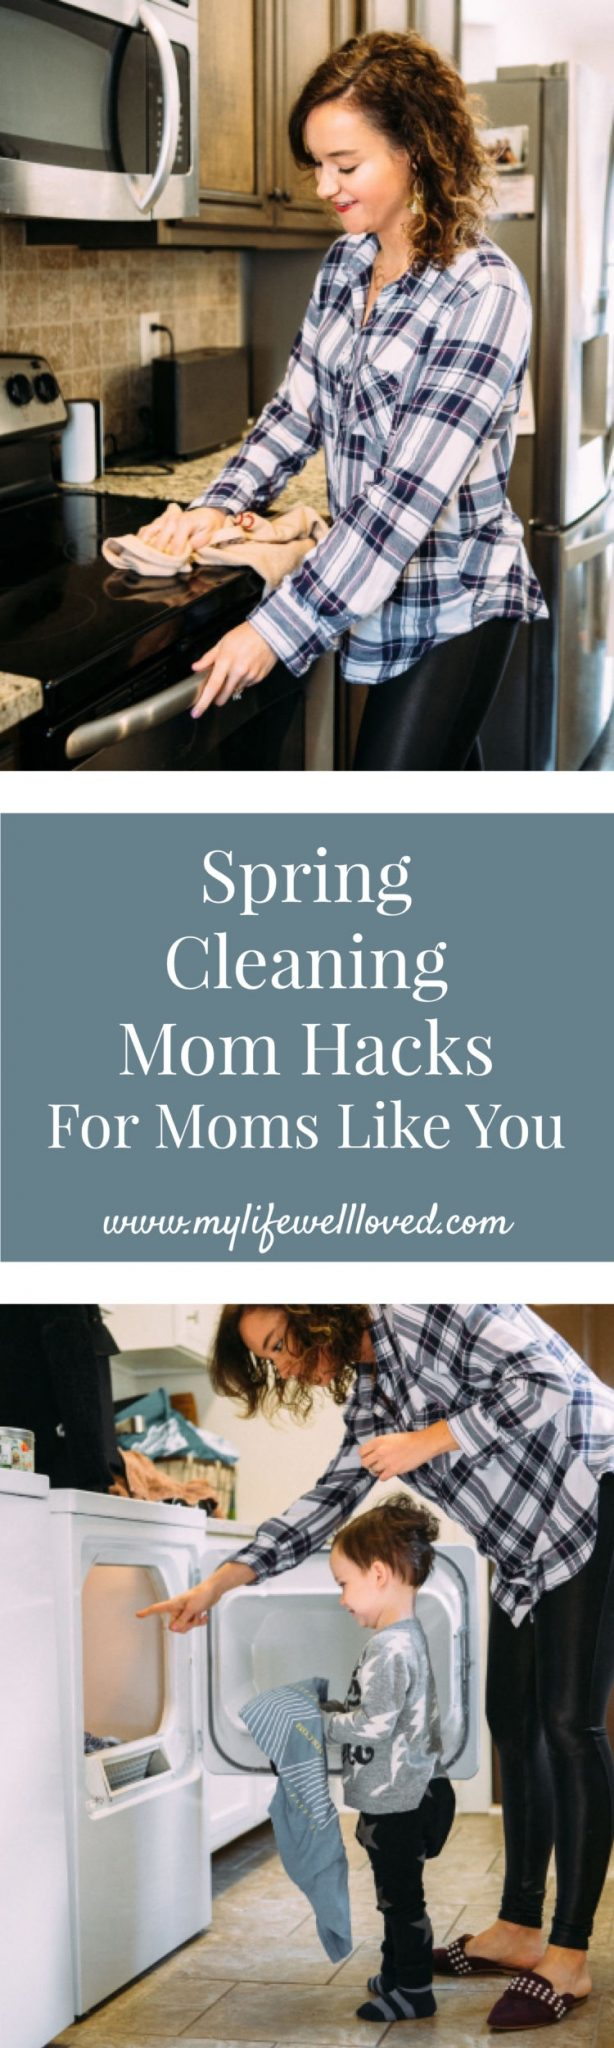 spring cleaning mom hacks for moms like you by alabama blogger heather brown